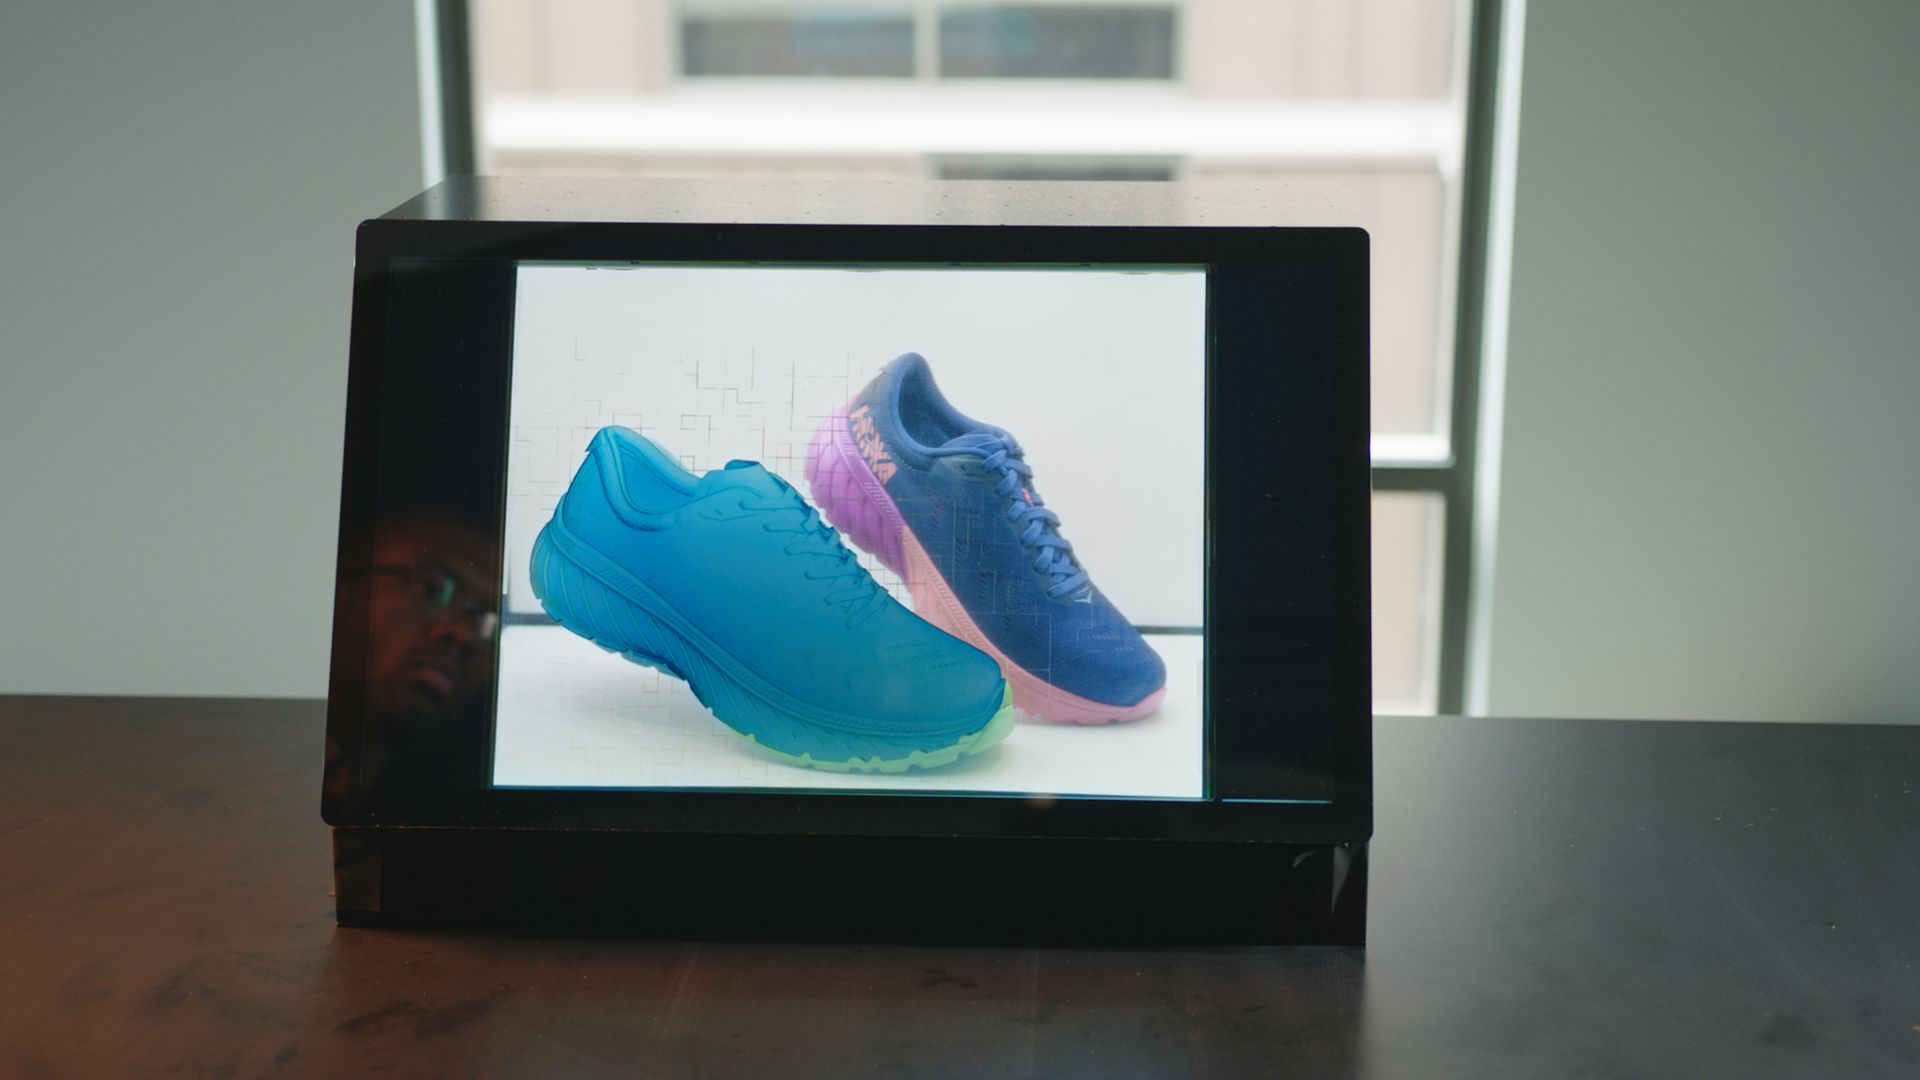 A digital shoe appears on the left side of Adobe's transparent display prototype, with a real sneaker in a light box in the background.